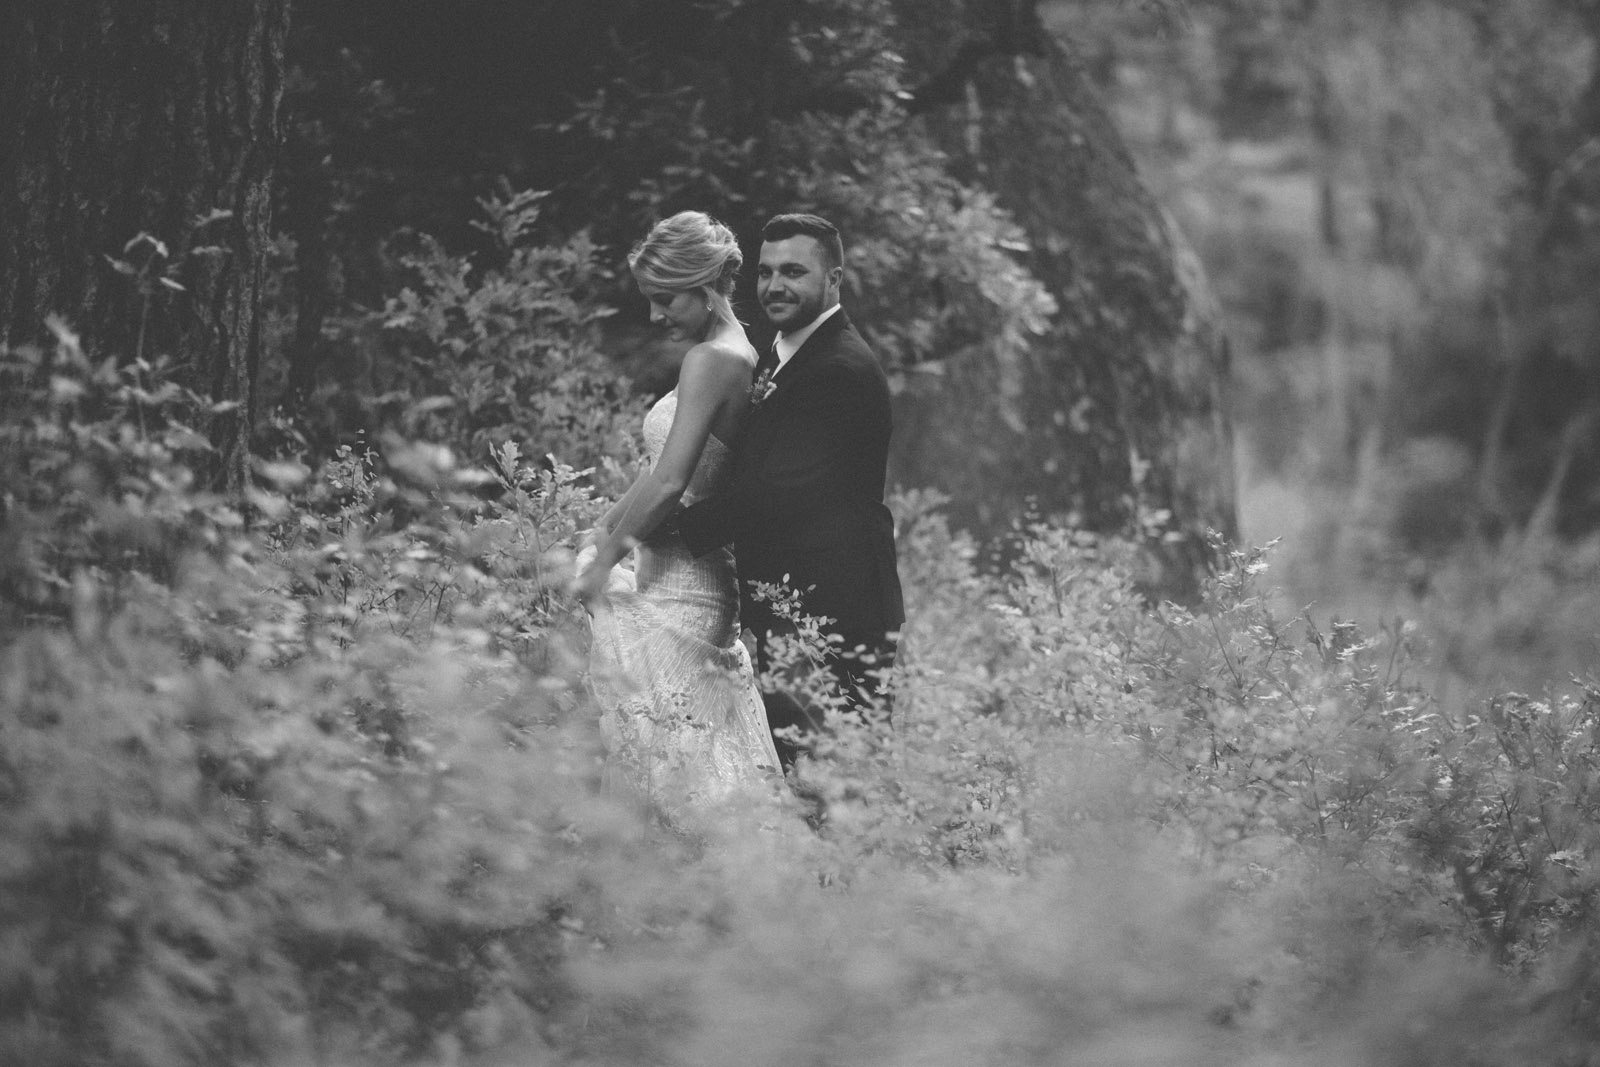 161-beautiful-bride-and-groom-photojournalist-portraits-at-elopement-wedding-in-durango-colorado-forest